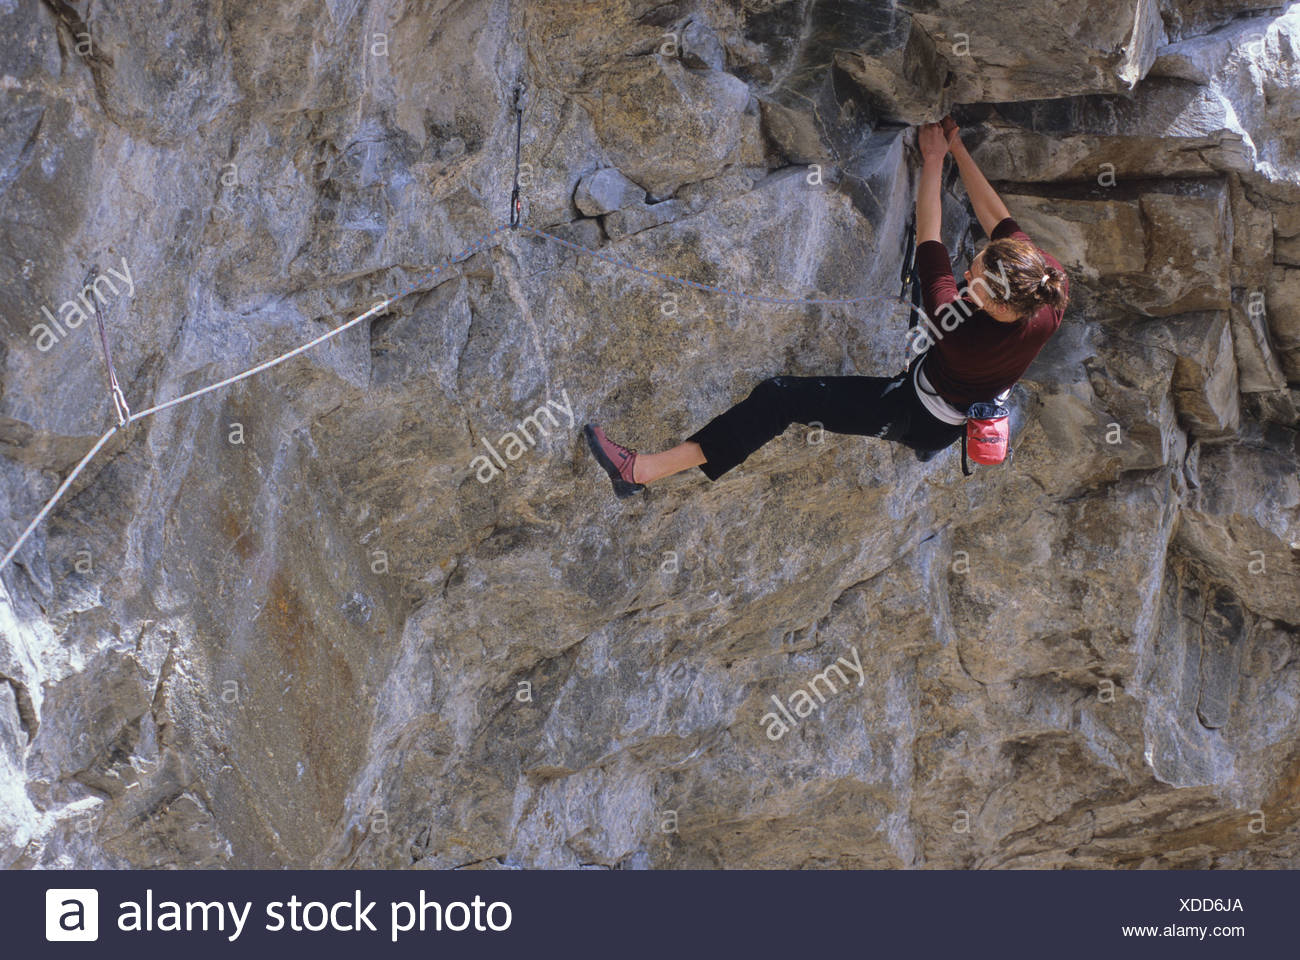 Woman climbing Not Fade Away 5.12a The Wave Wall Skaha Bluffs Penticton, British Columbia, Canada. - Stock Image